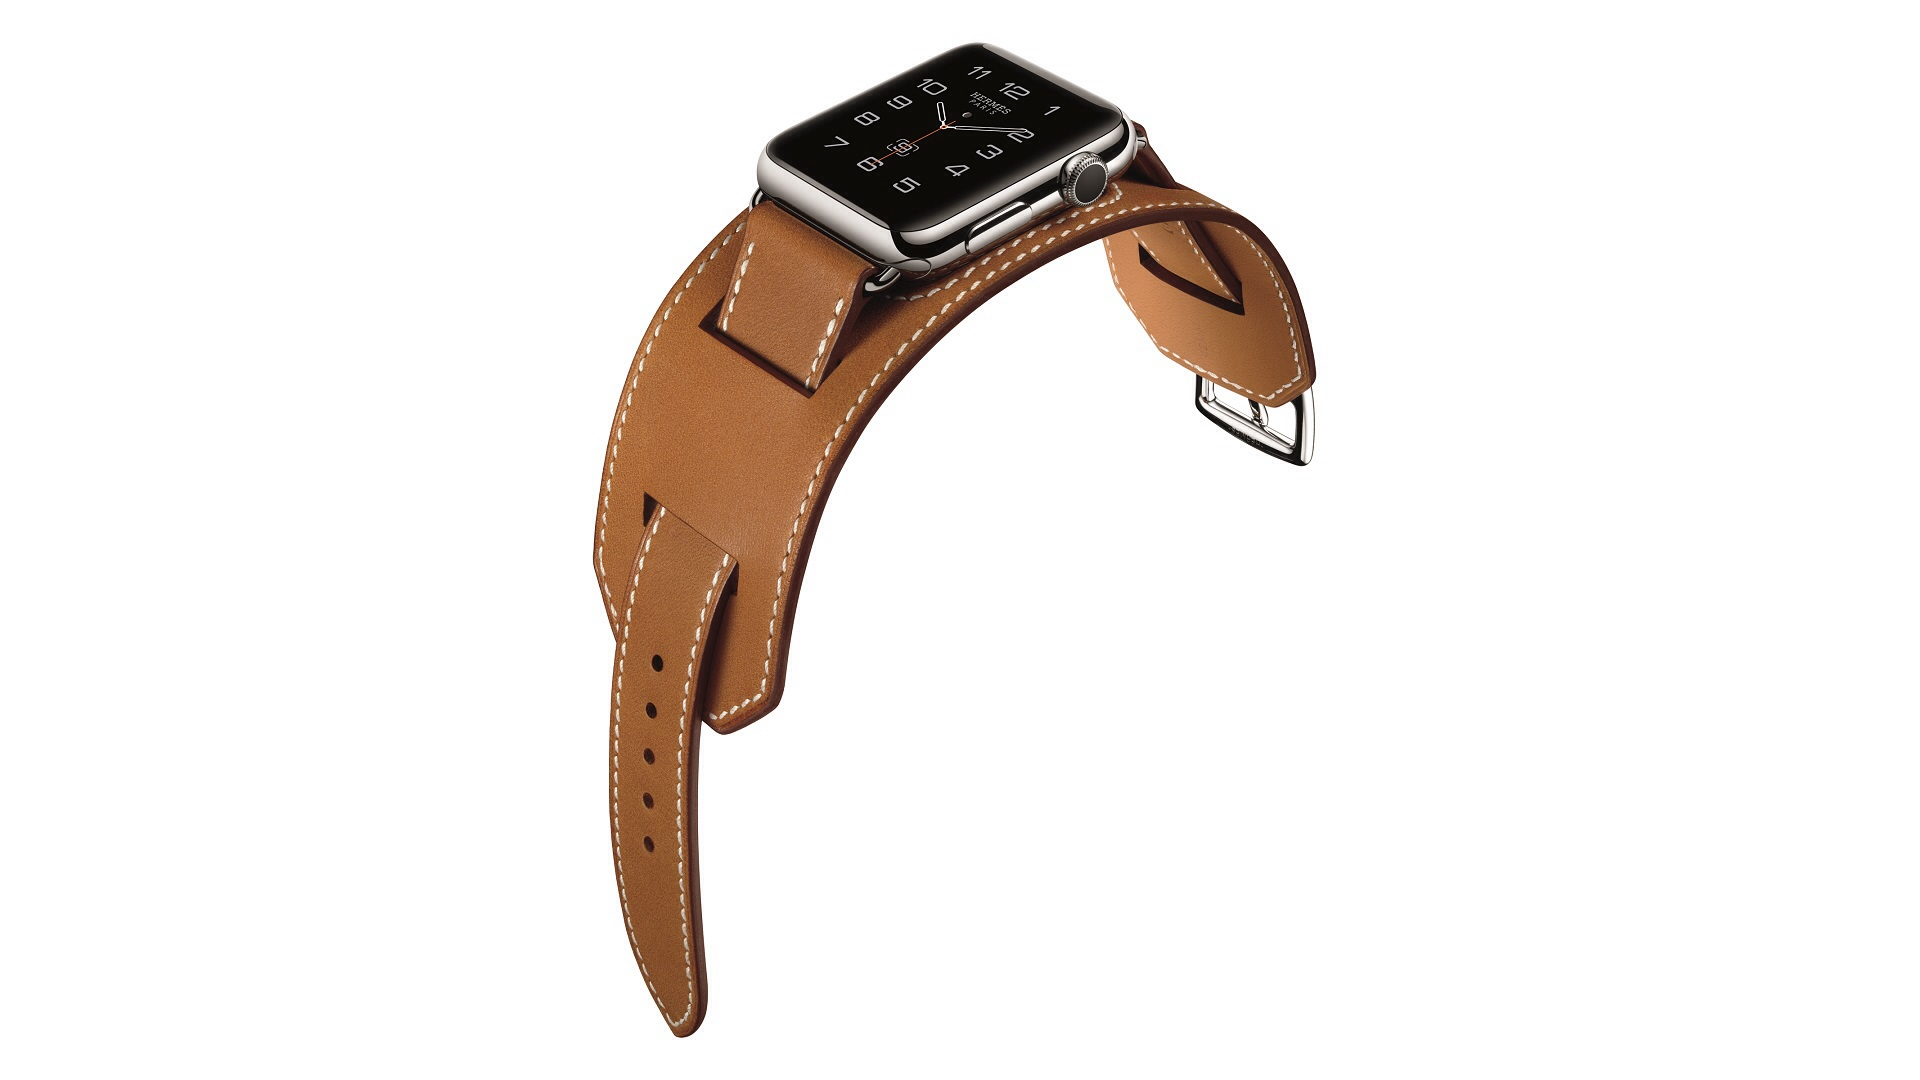 Apple Watch Gaining Holiday Sales Momentum, Says Analyst